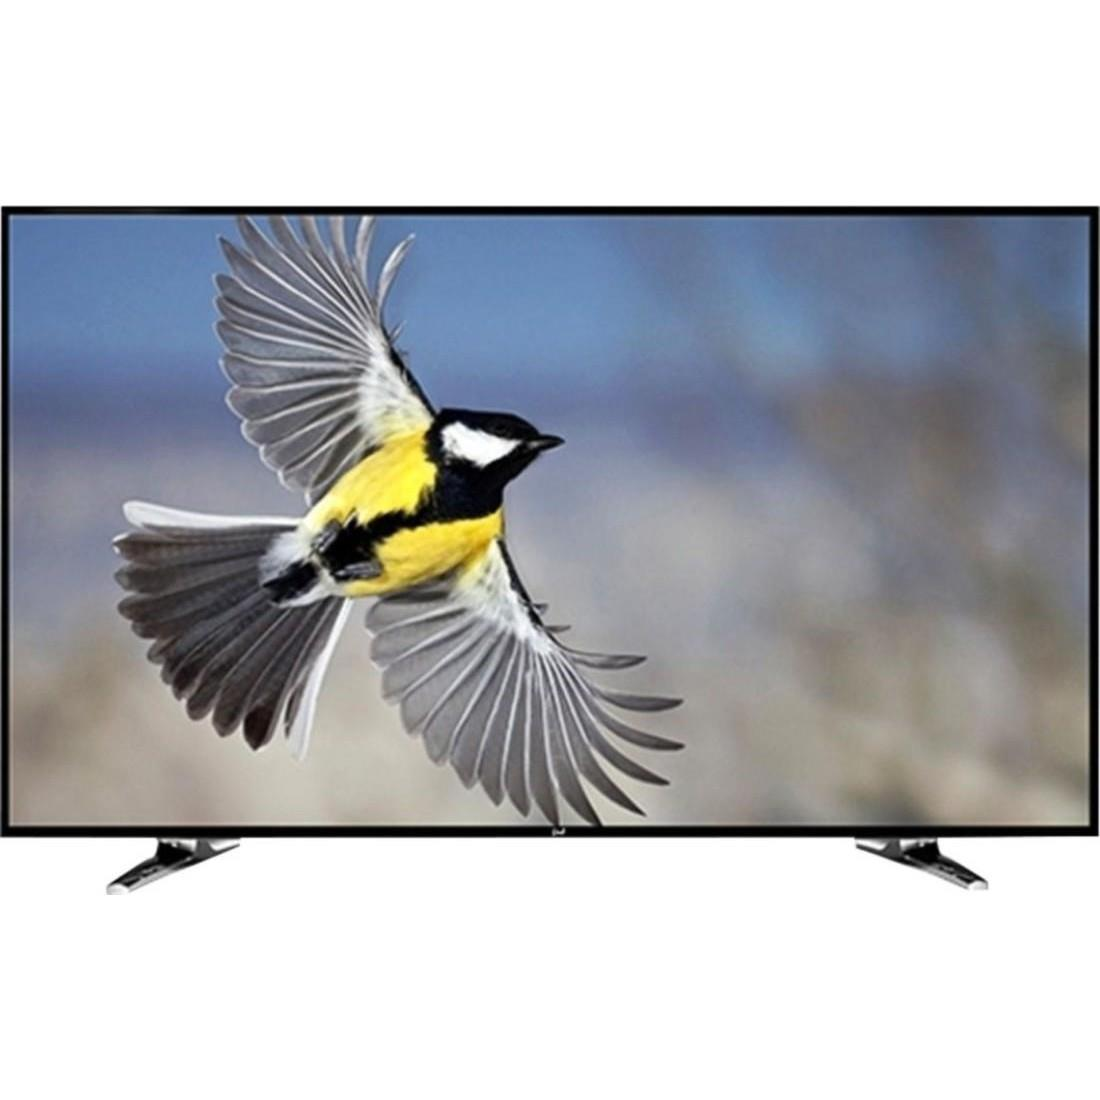 NOBLE 24CV24N01 61 cm (23.6) LED TV (HD Ready) Image